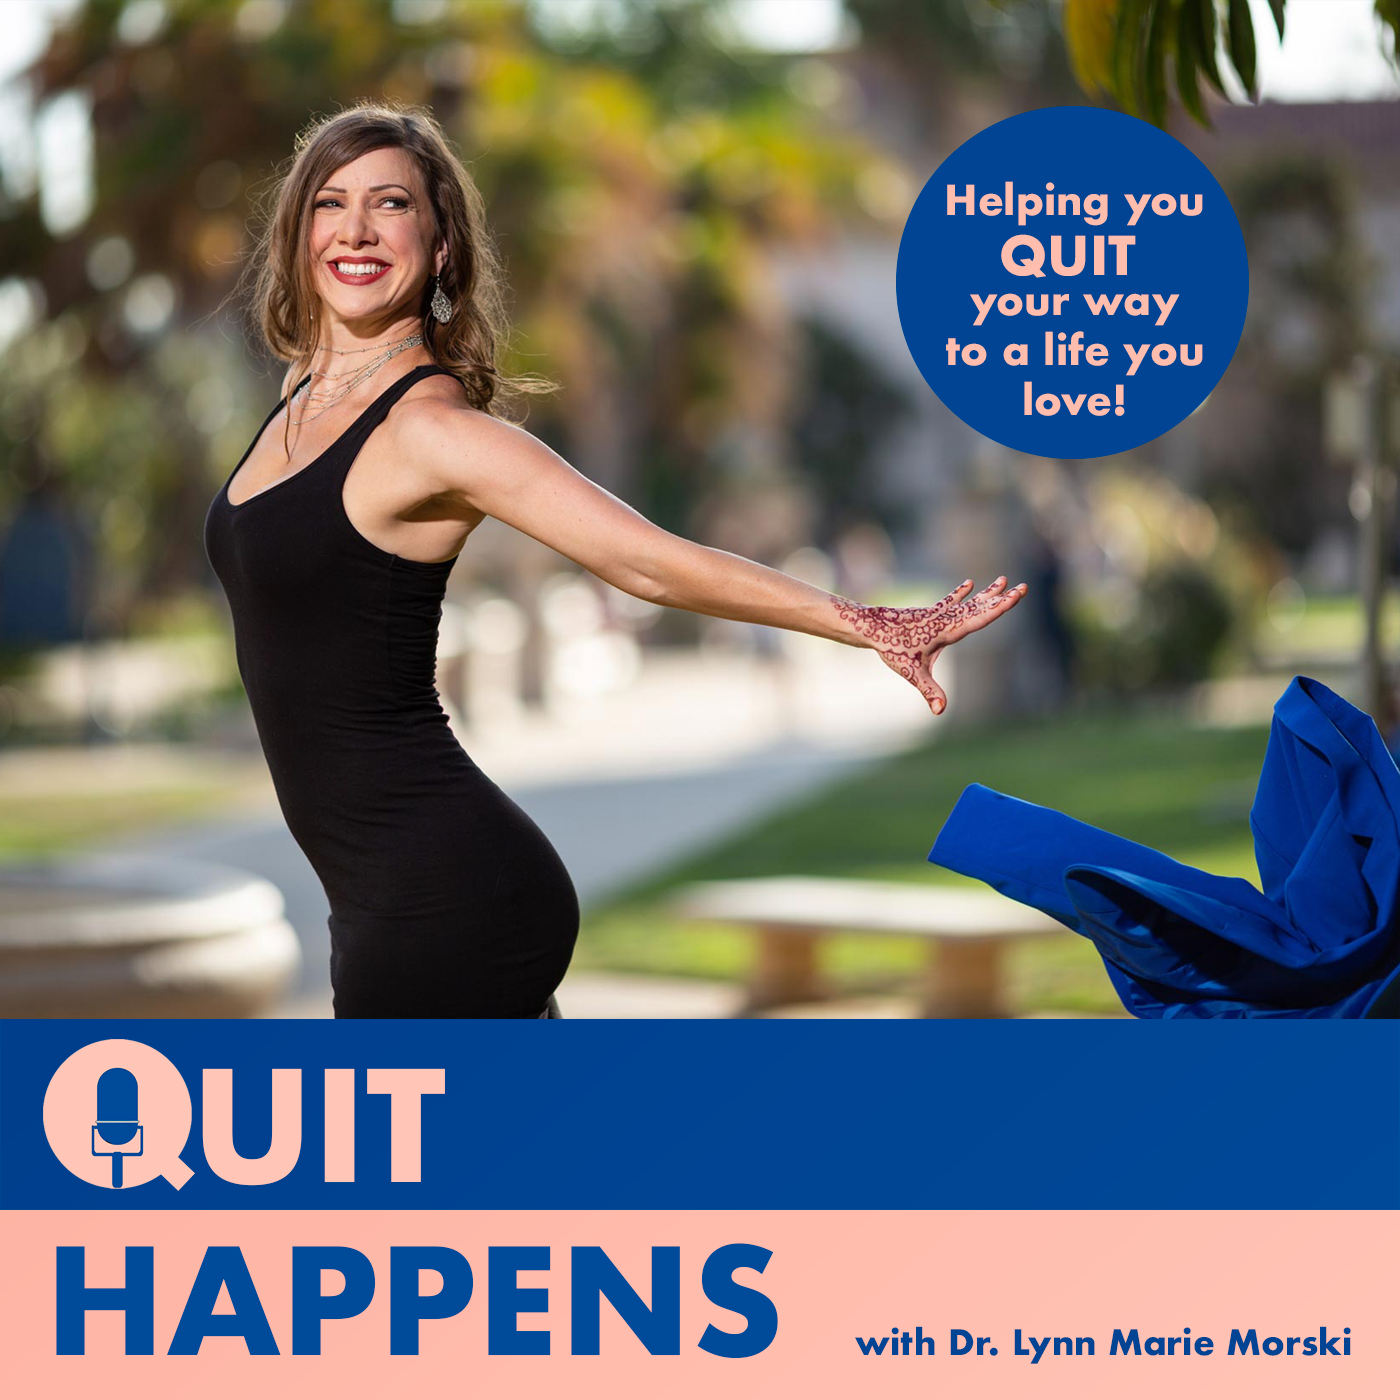 Quit Happens | How (and why!) to strategically quit your job, leave your relationship, or part ways with toxic mindsets.